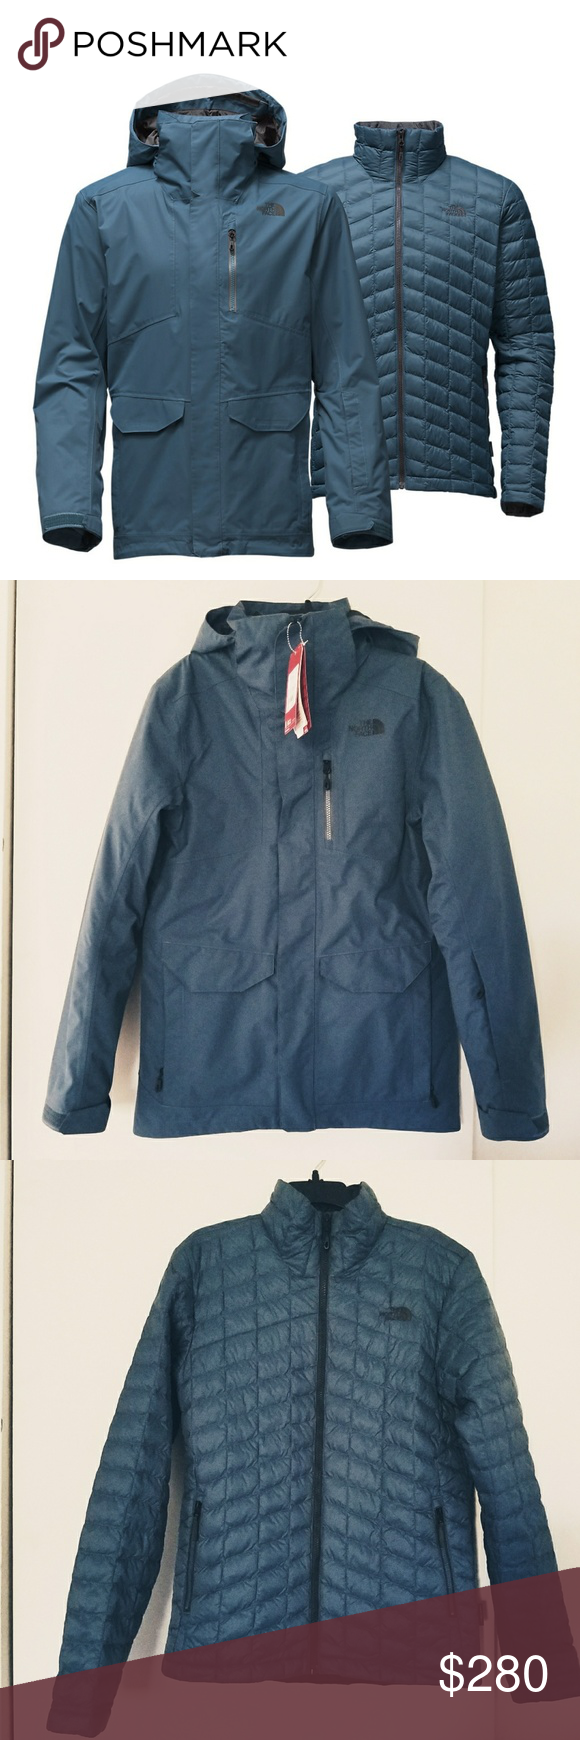 Men S The North Face Thermoball 3 In 1 Triclimate Outer Jacket Clothes Design Snow Skirt [ 1740 x 580 Pixel ]